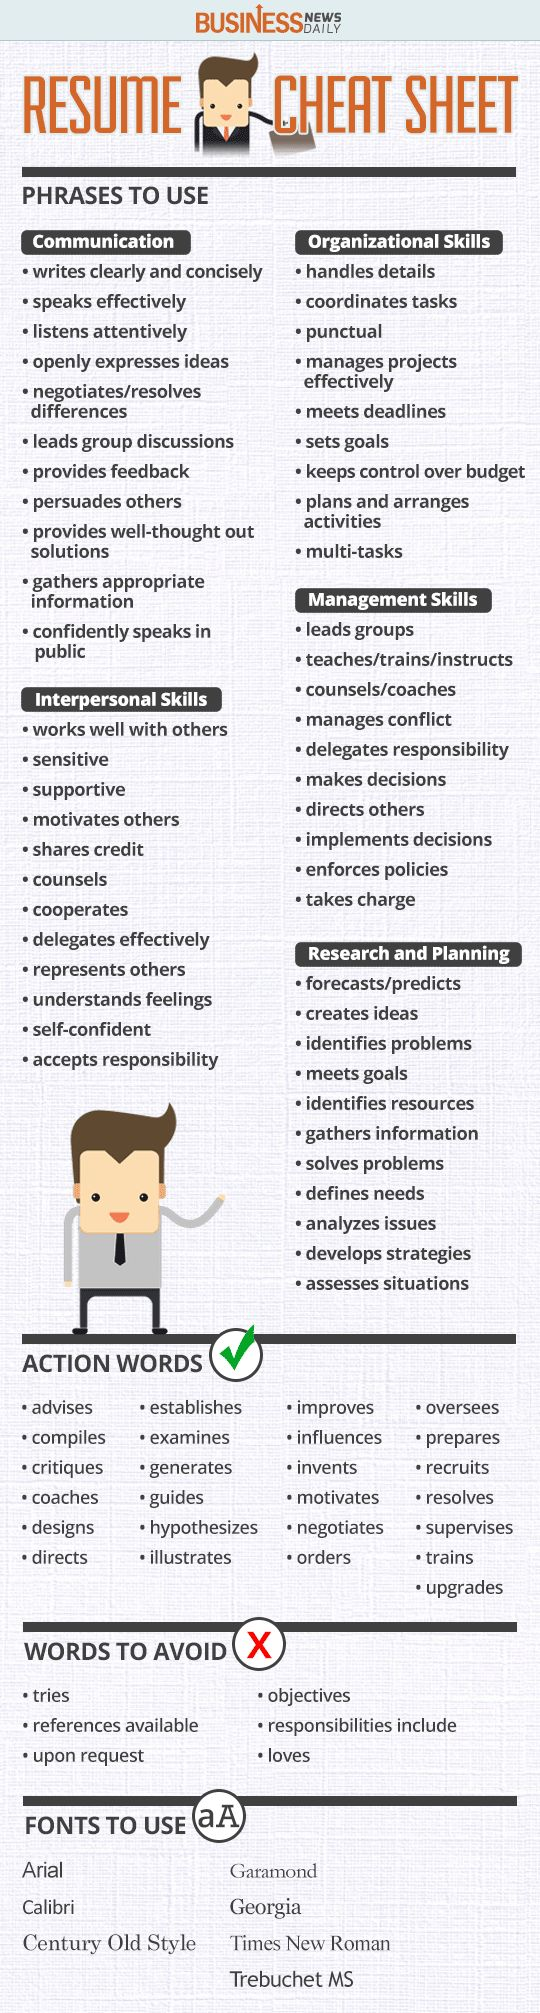 Opposenewapstandardsus  Nice  Ideas About Resume On Pinterest  Cv Format Resume Cv And  With Marvelous Resume Cheat Sheet Infographic Andrews Almost Done With A Complete Unit On Employment Which With Delightful Barista Job Description Resume Also Resume Template Online In Addition Resume For Flight Attendant And Resume Nursing As Well As References On Resumes Additionally Film Resume Template From Pinterestcom With Opposenewapstandardsus  Marvelous  Ideas About Resume On Pinterest  Cv Format Resume Cv And  With Delightful Resume Cheat Sheet Infographic Andrews Almost Done With A Complete Unit On Employment Which And Nice Barista Job Description Resume Also Resume Template Online In Addition Resume For Flight Attendant From Pinterestcom